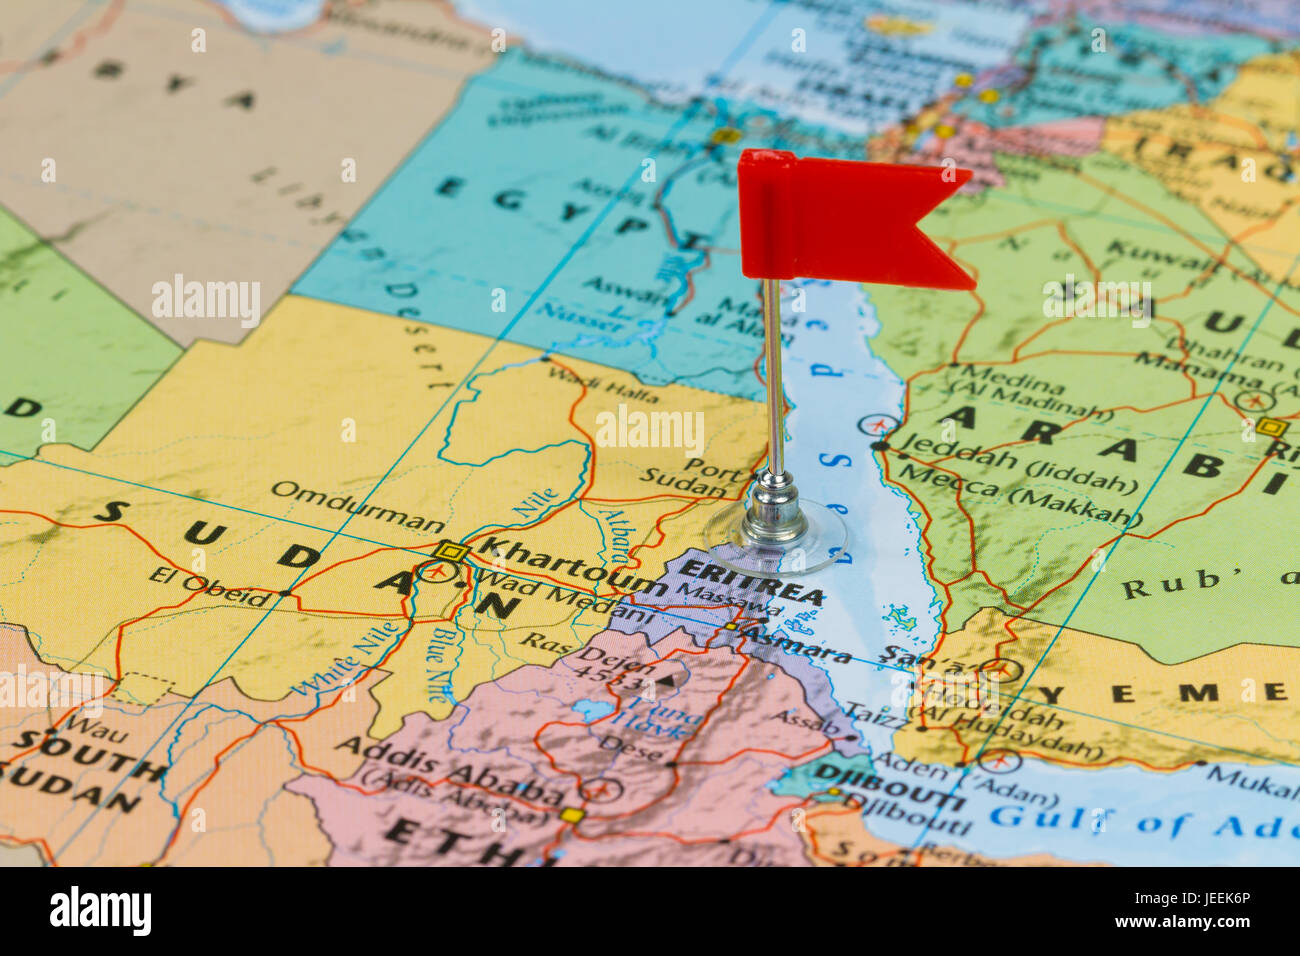 Photo of Eritrea marked by red flag in holder. Country on African continent. Stock Photo